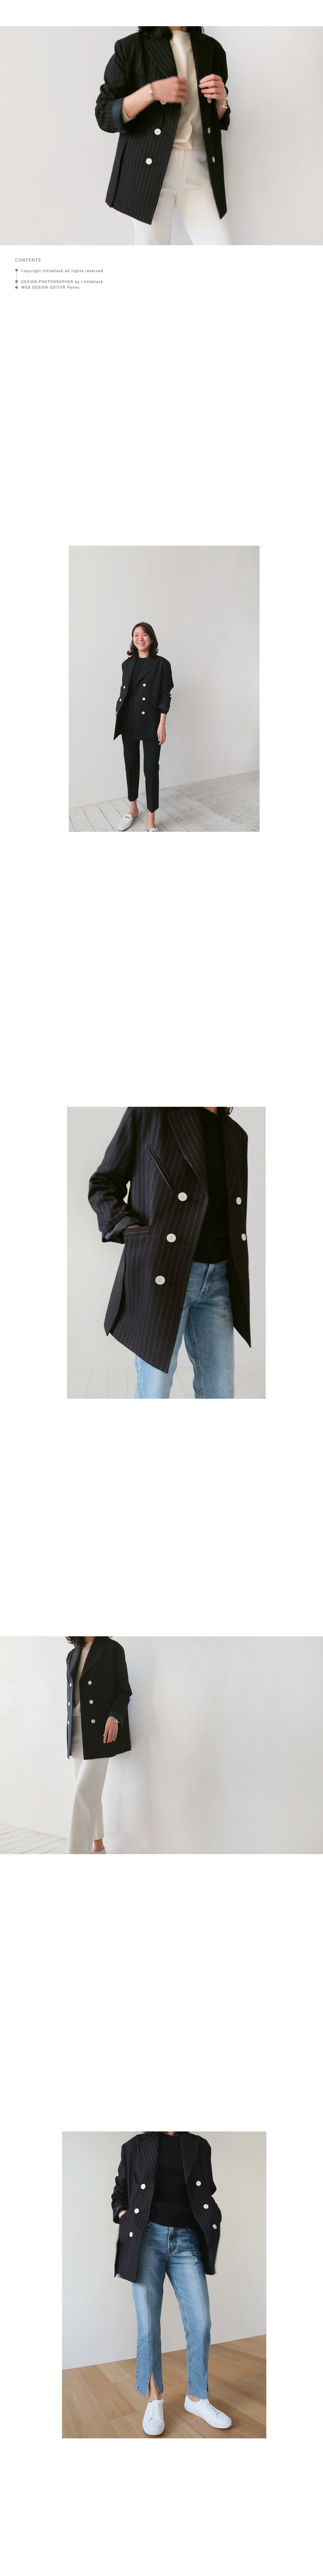 Double-Breasted Pinstripe Jacket|